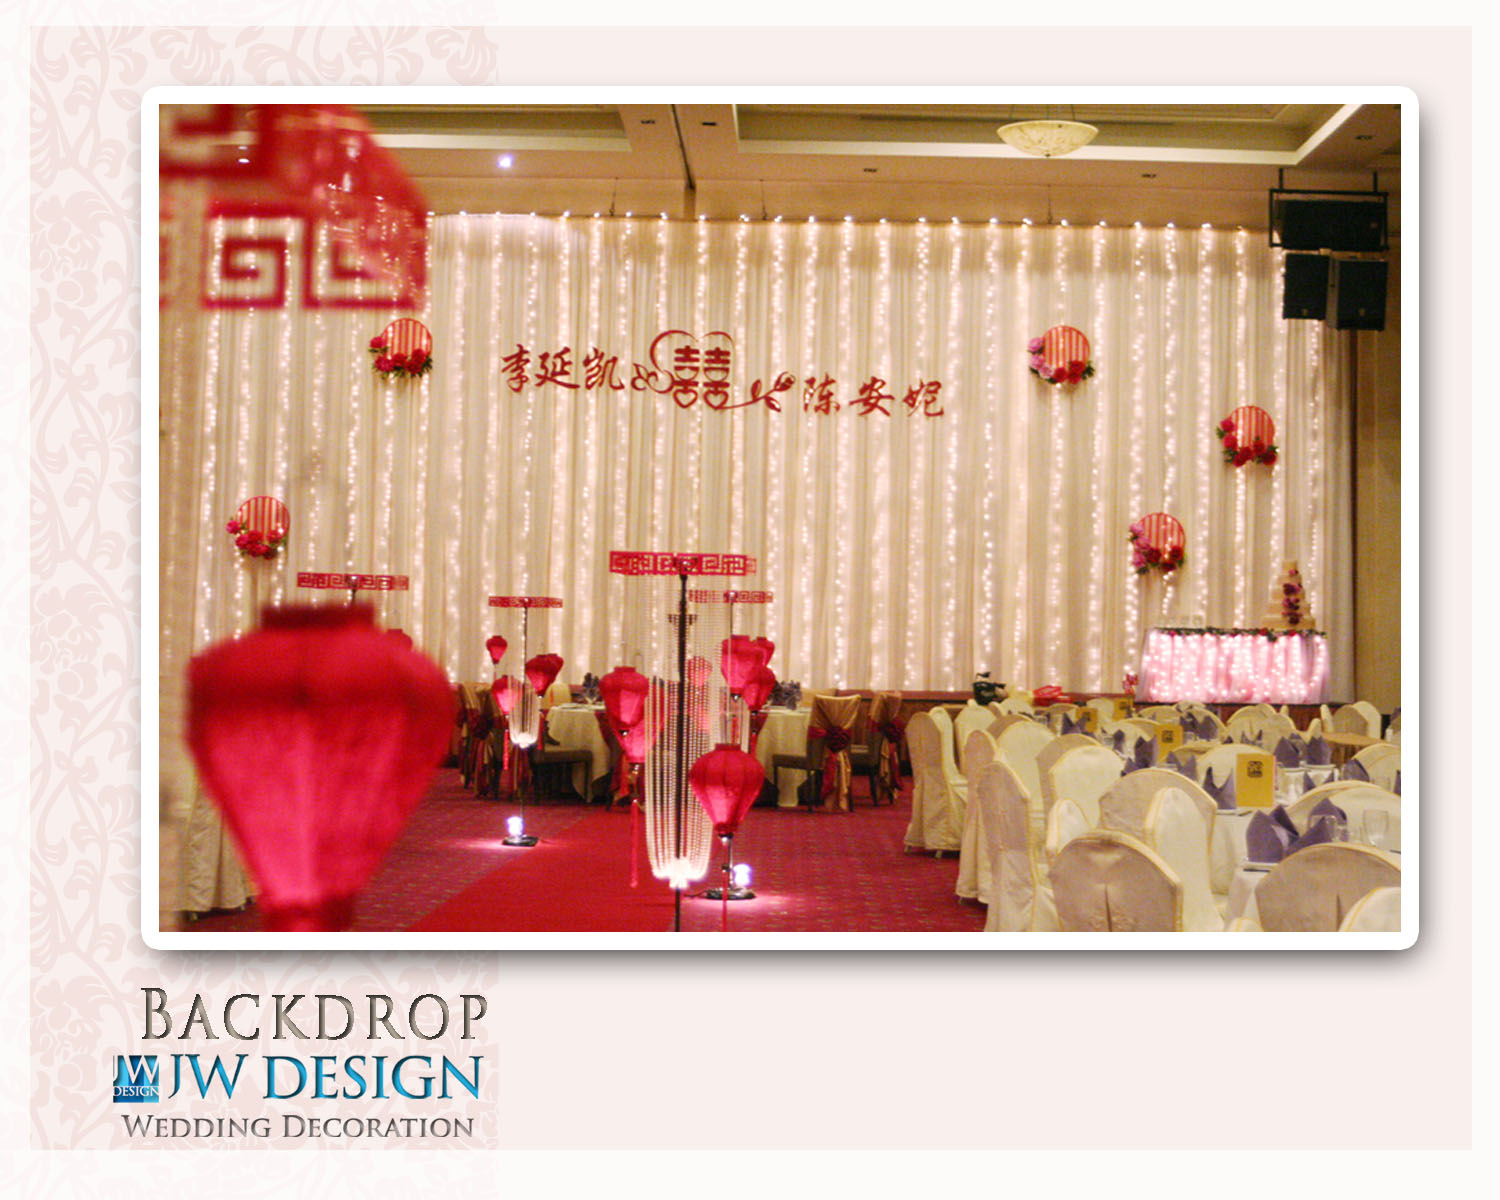 Jw design wedding decoration oriental theme wedding klang kai ann nees wedding klang centro ballroom junglespirit Gallery